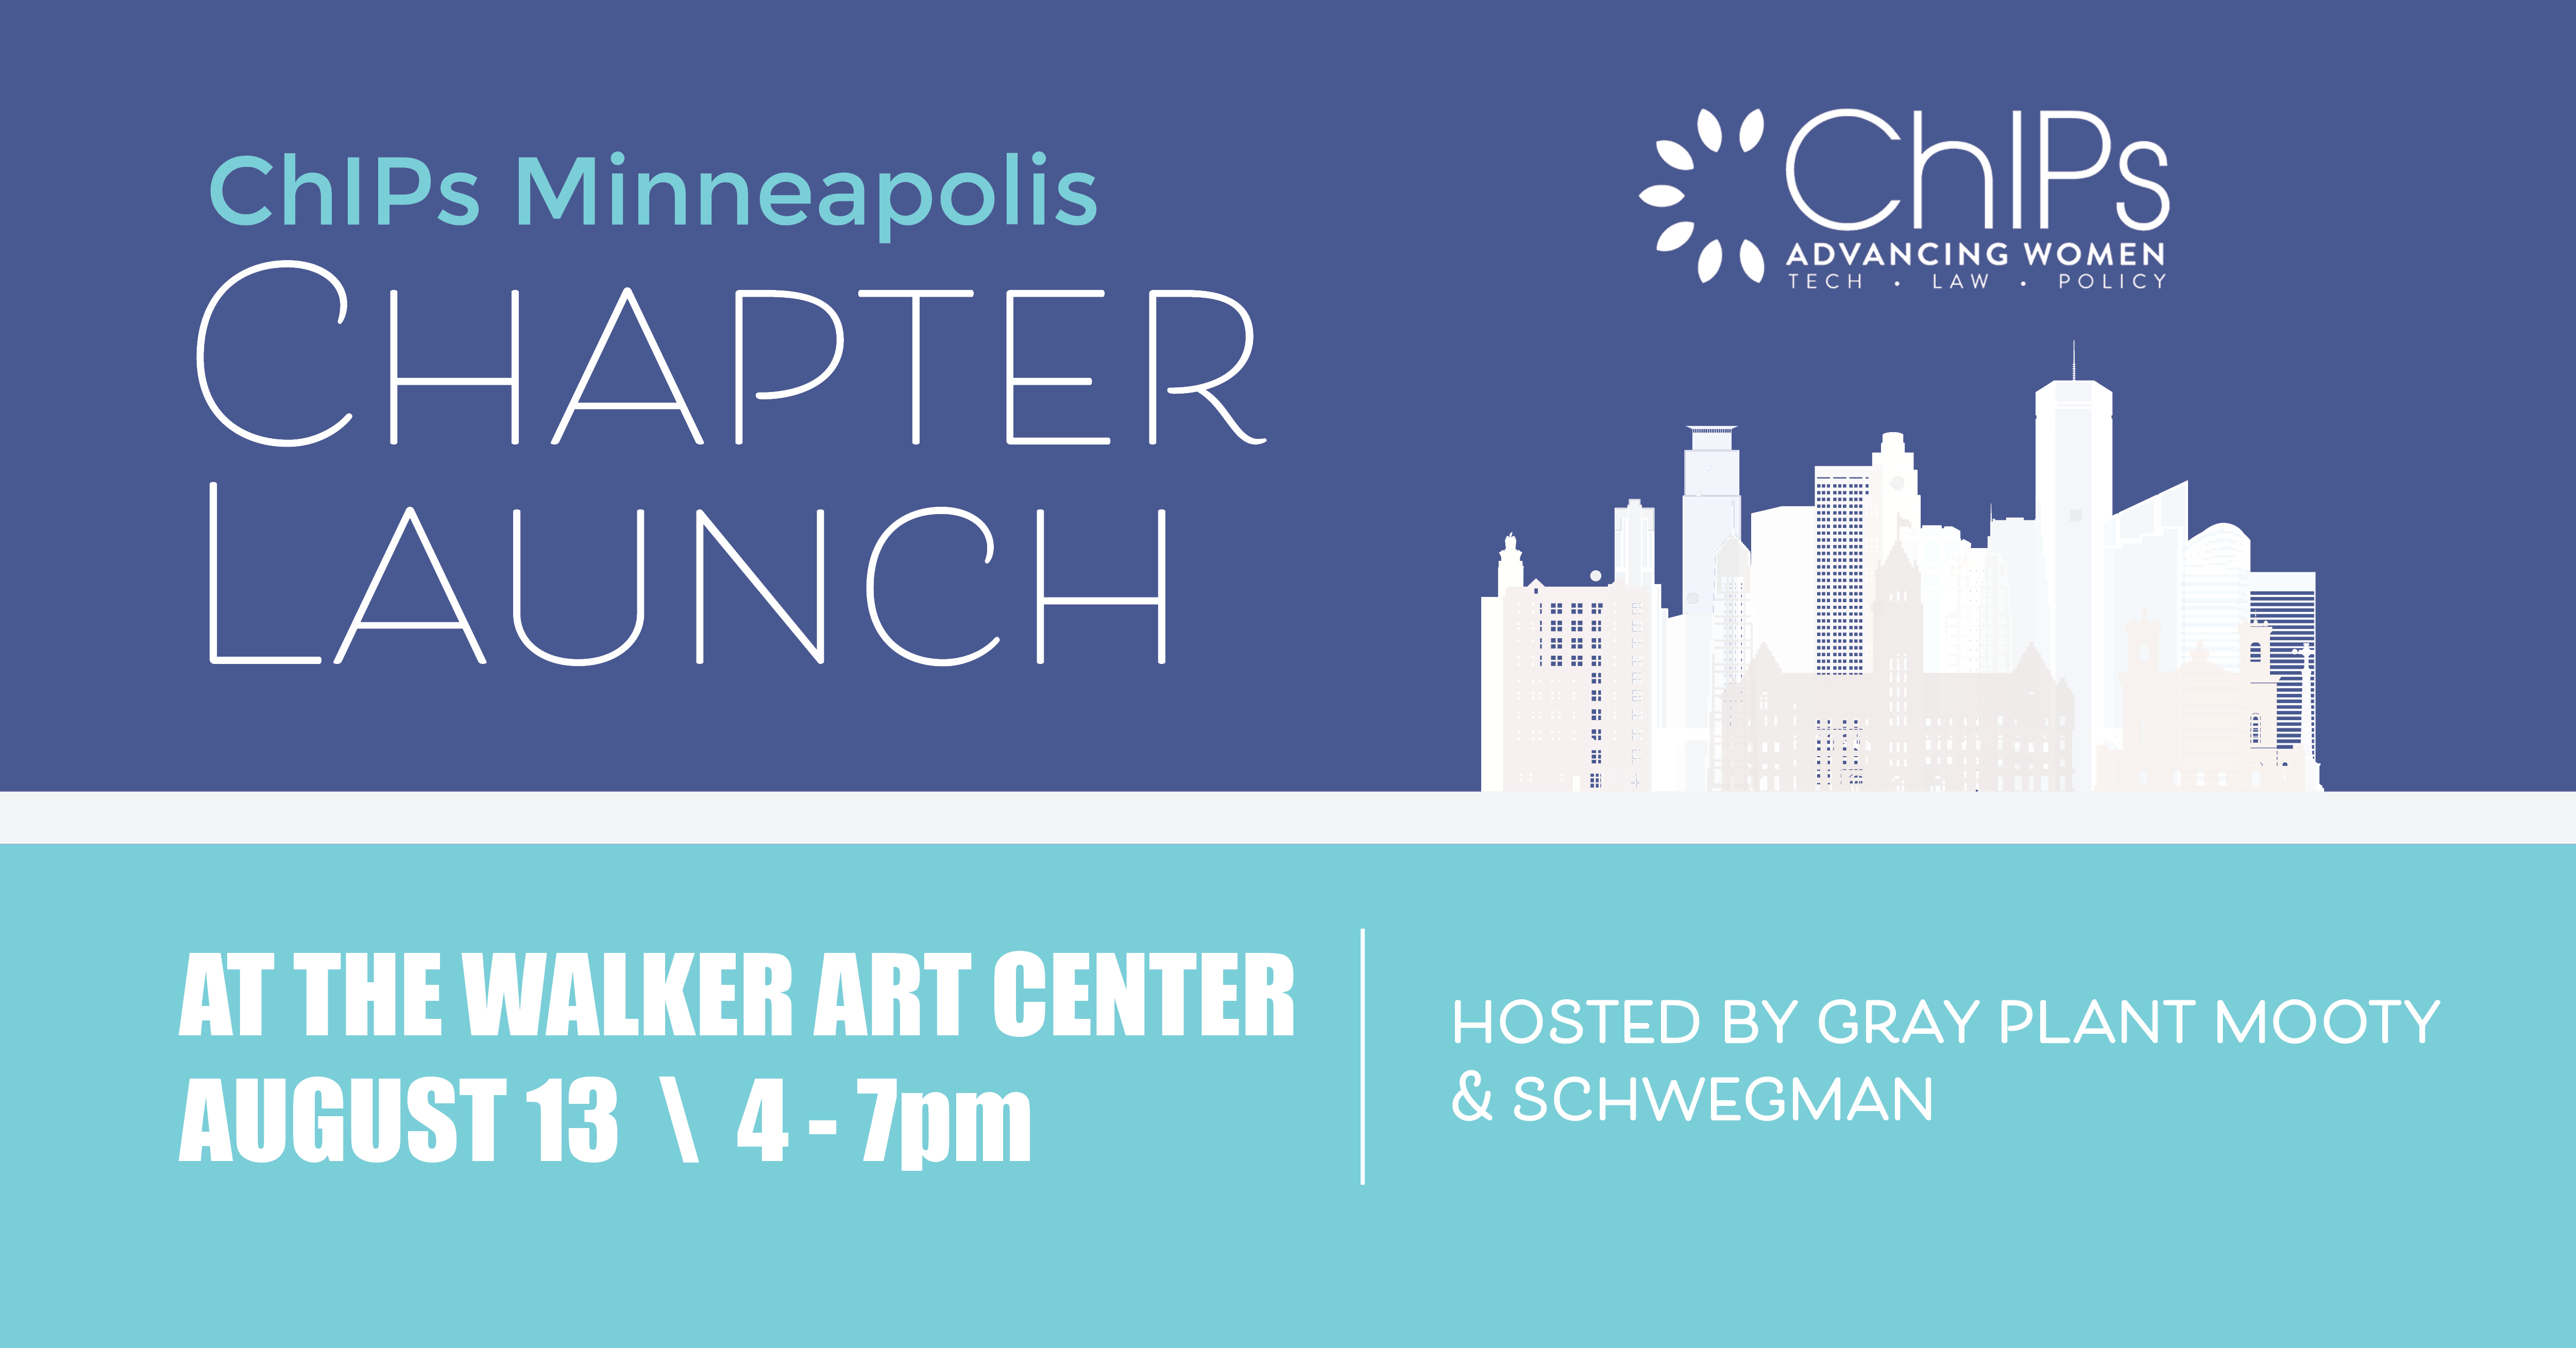 Chips Minneapolis Chapter Launch Social Media Image